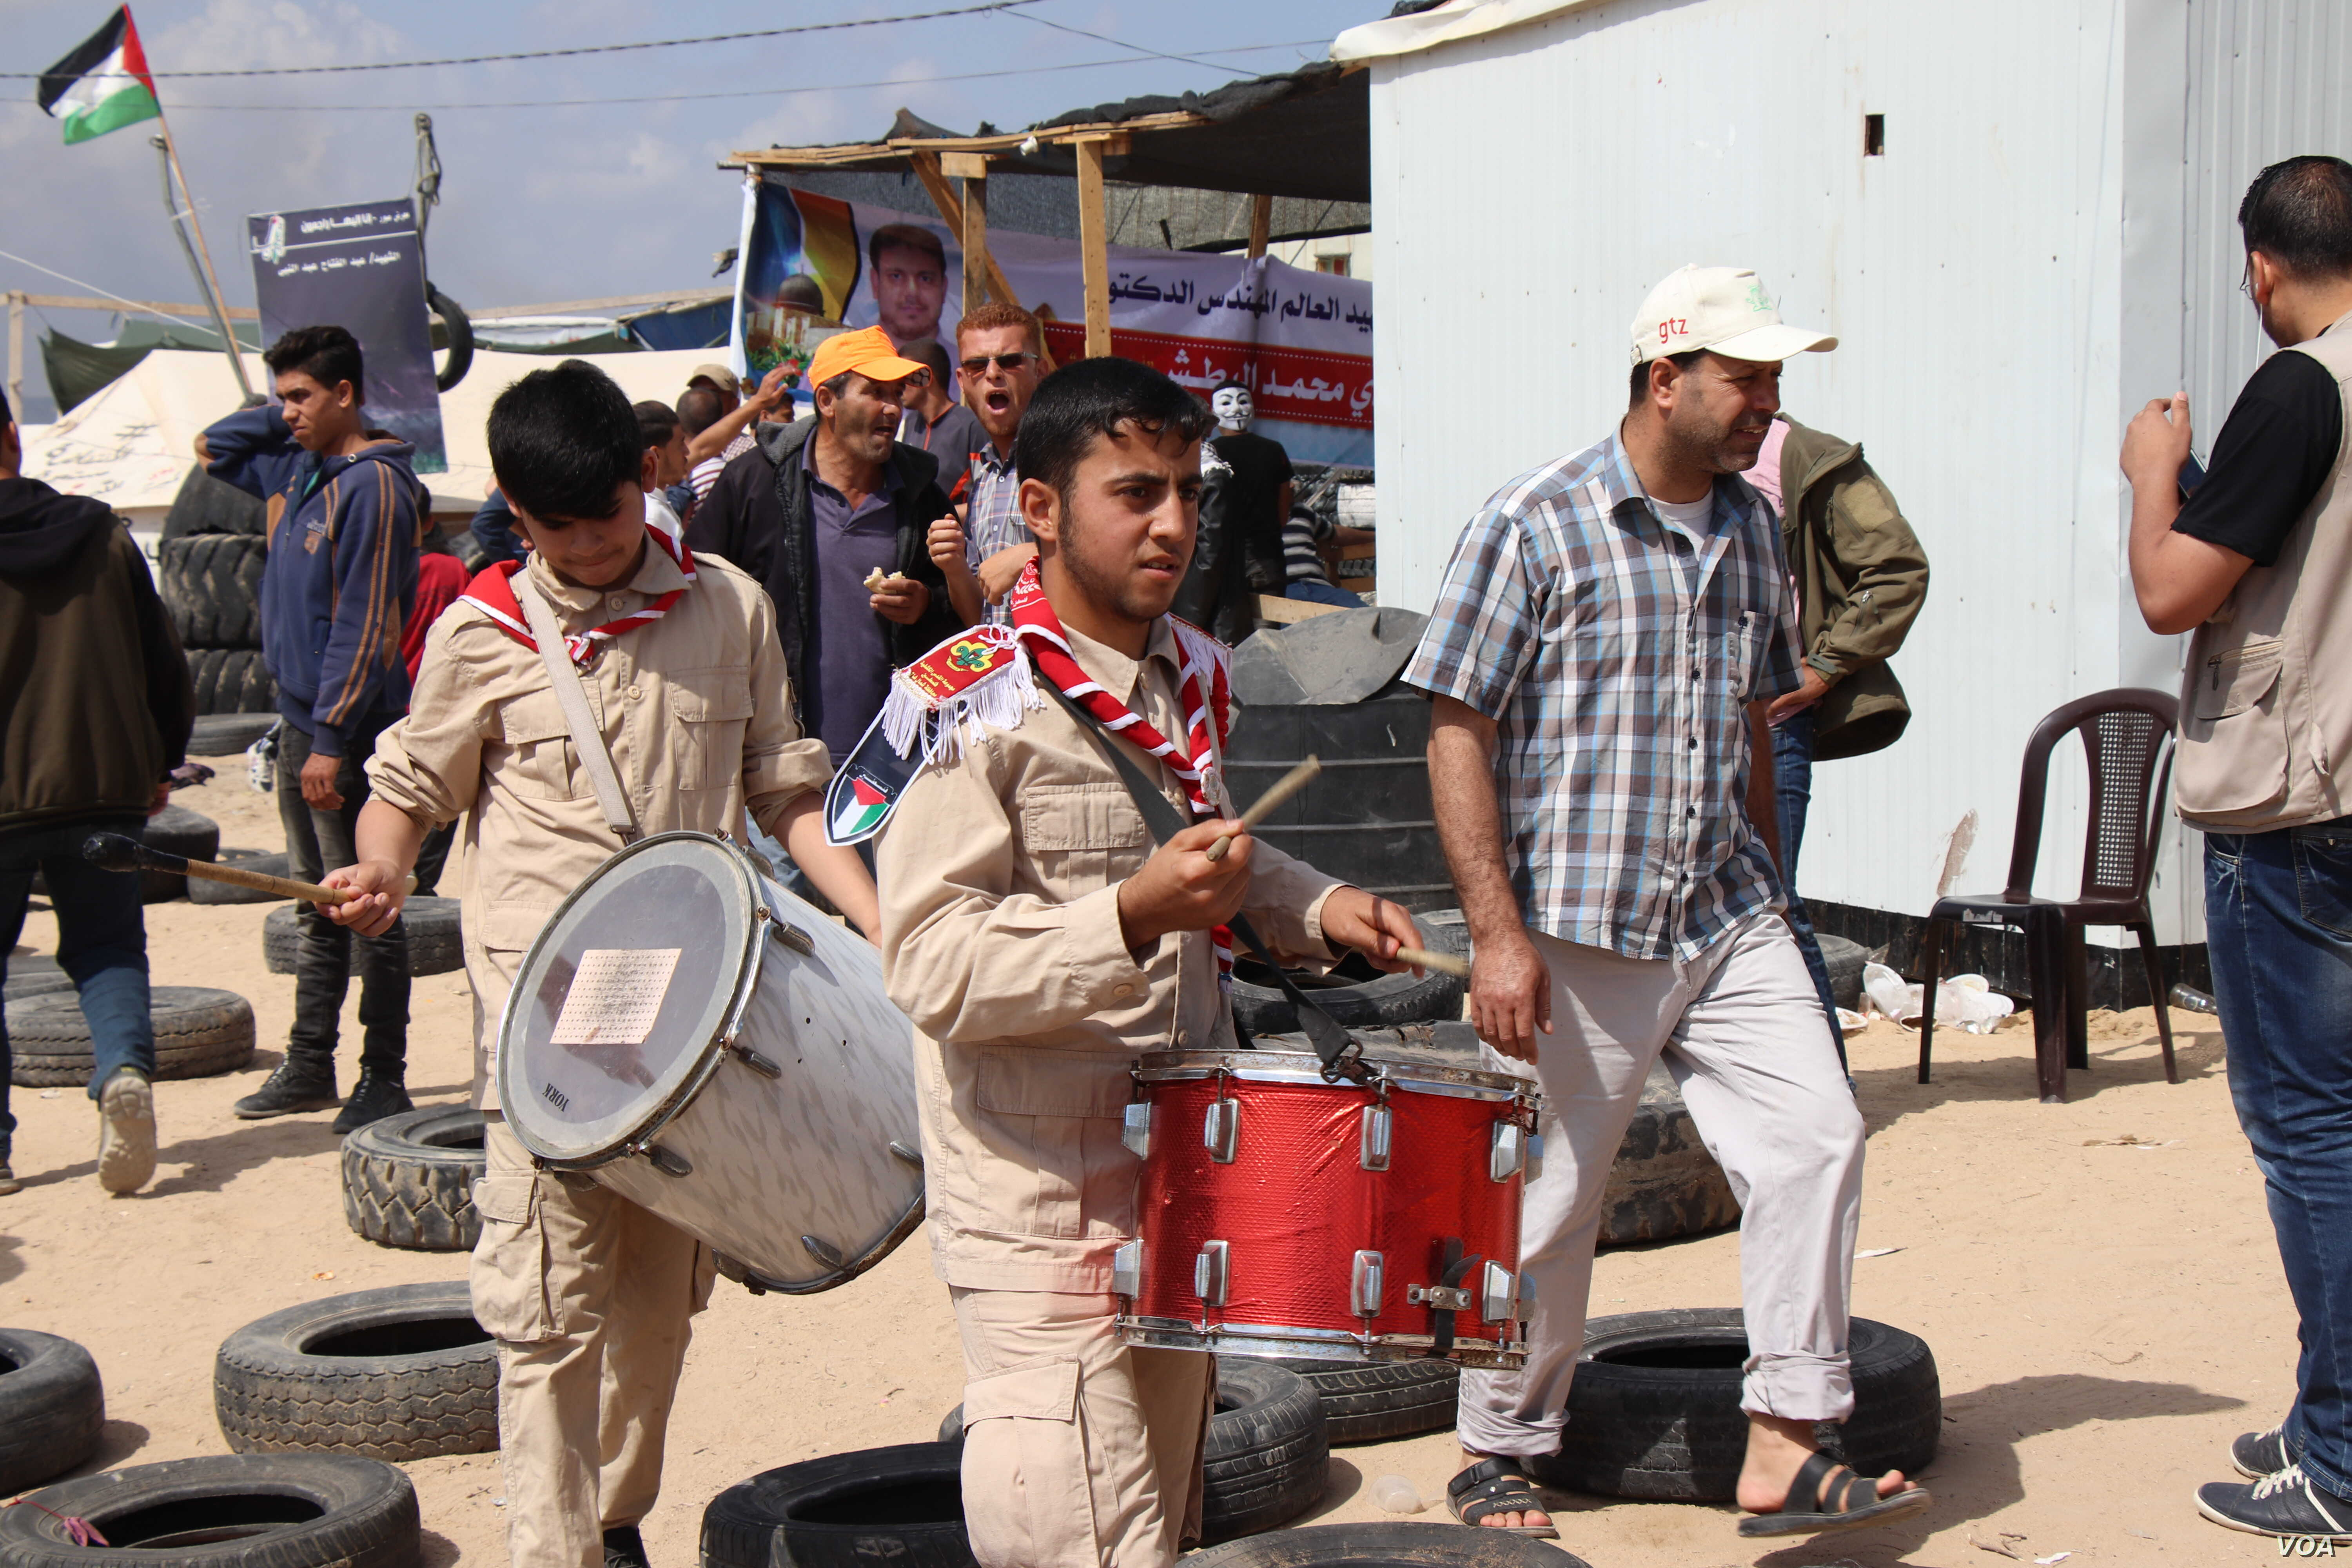 Boys play the drums to excite protesters who say that even after 70 years of displacement, they still want to return to their homes in the Gaza Strip, May 14, 2018.